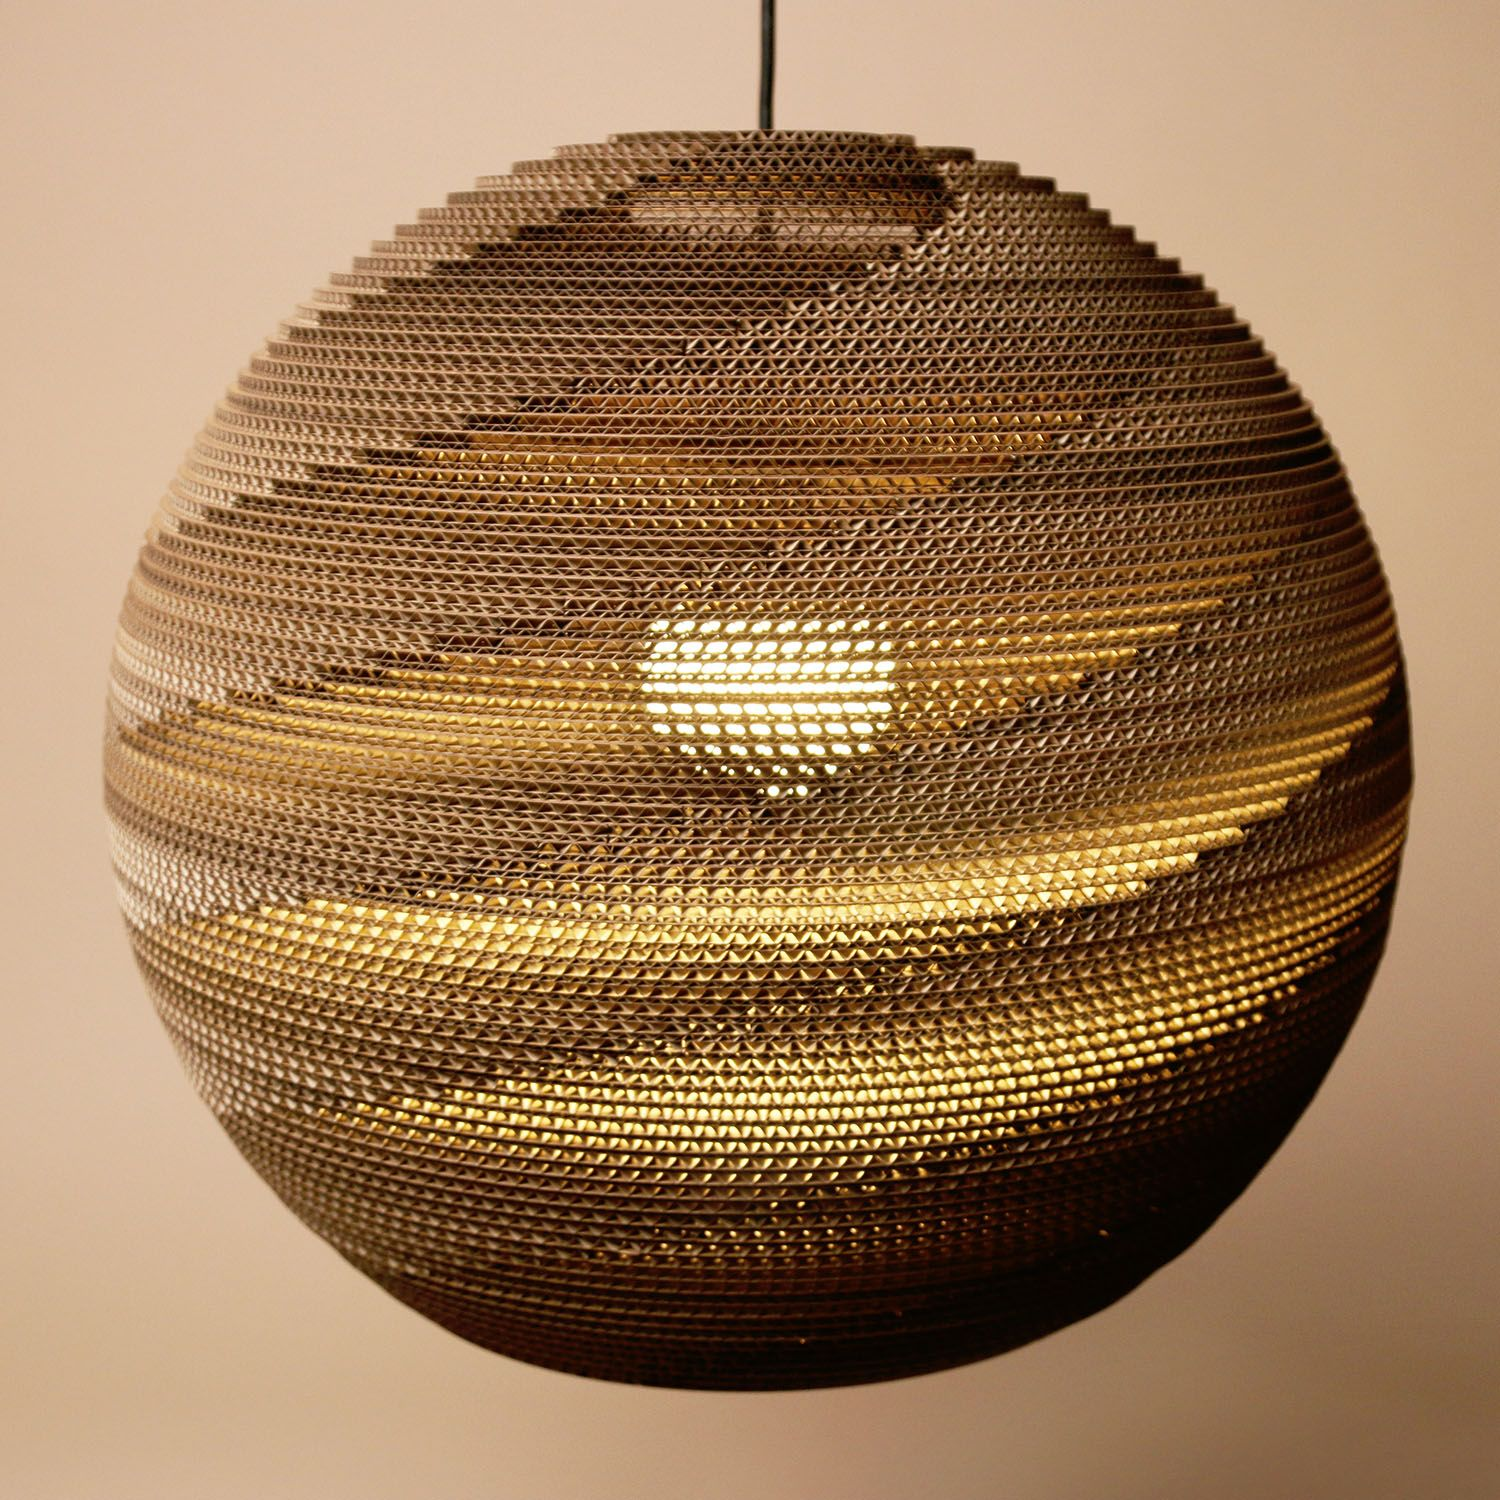 Product Photo - Kartonov St N Tko Cardboard Shade Sphere